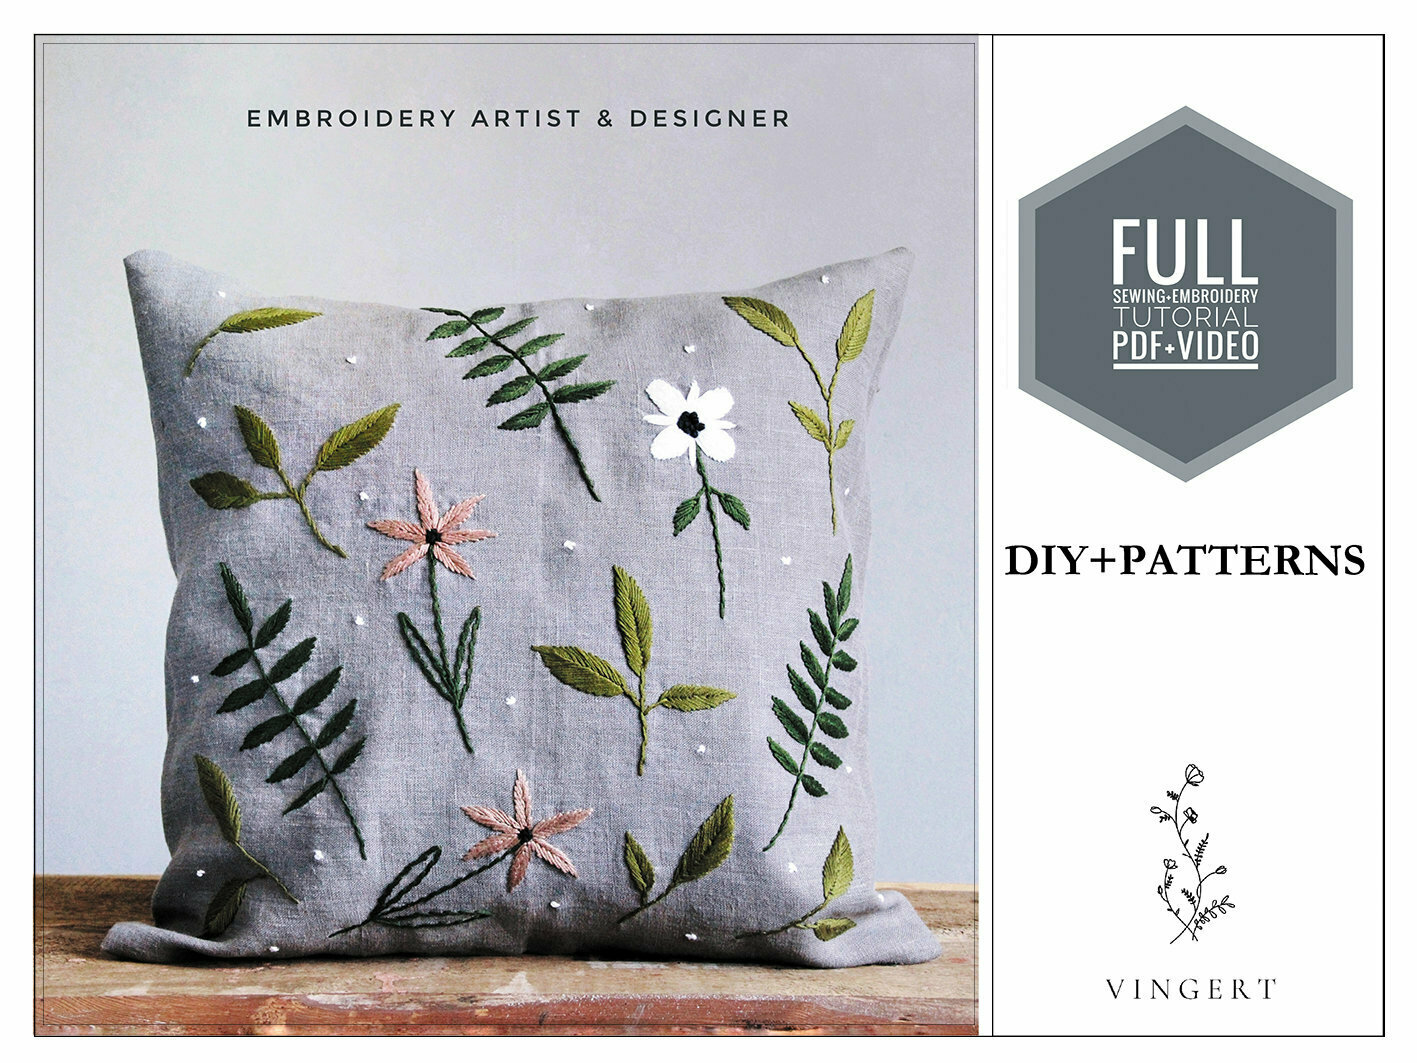 Embroidery pdf +video pattern. Gray pillow case